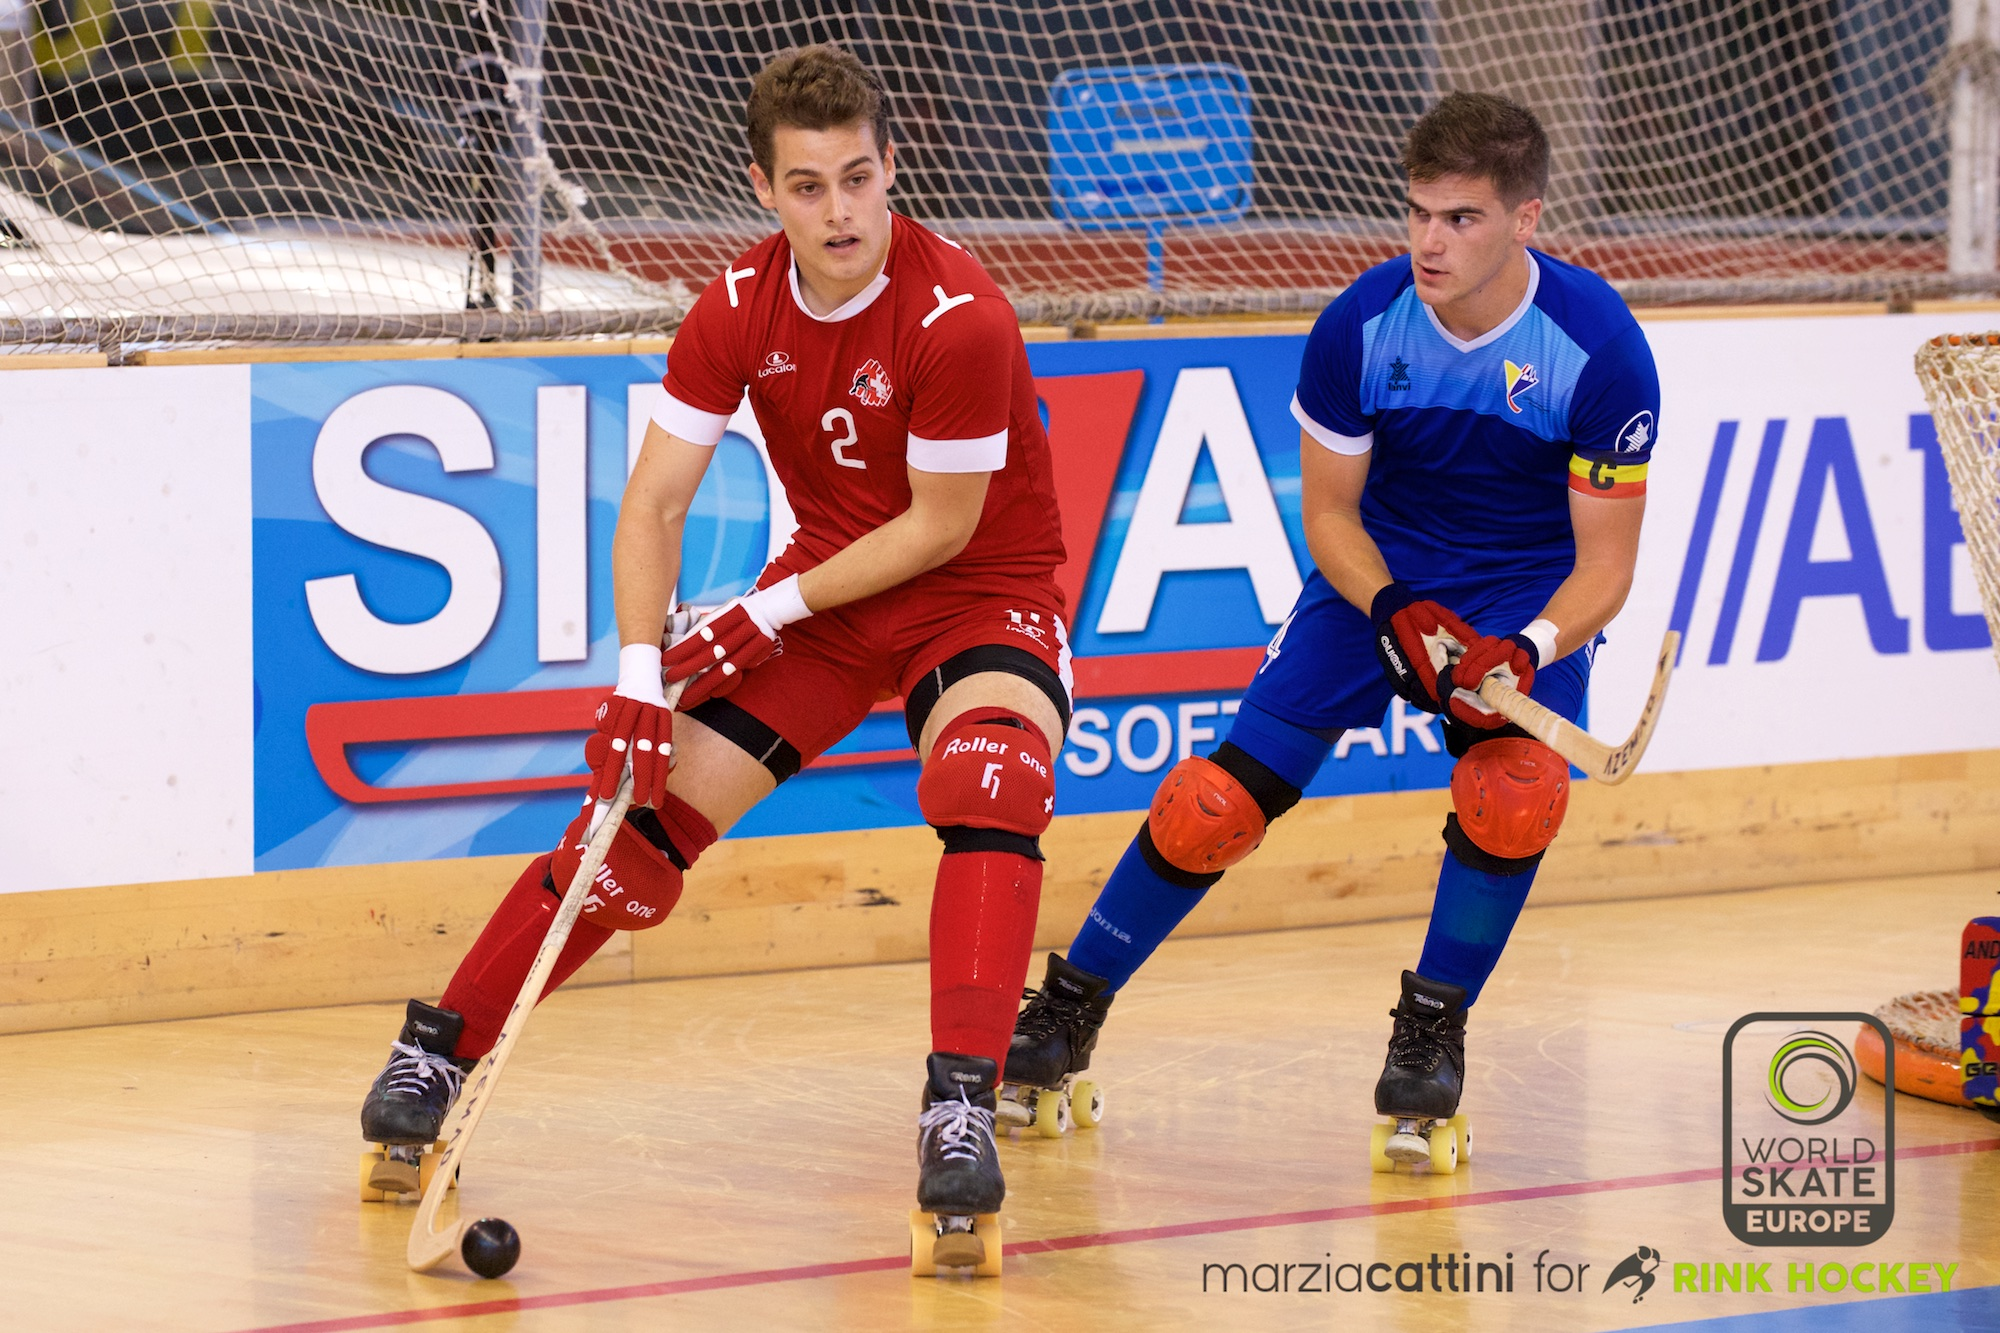 PHOTOS – 22/07/2018 - EUROHOCKEY CORUNA 2018 - Match #38 - Andorra x Switzerland – Photos by Marzia Cattini